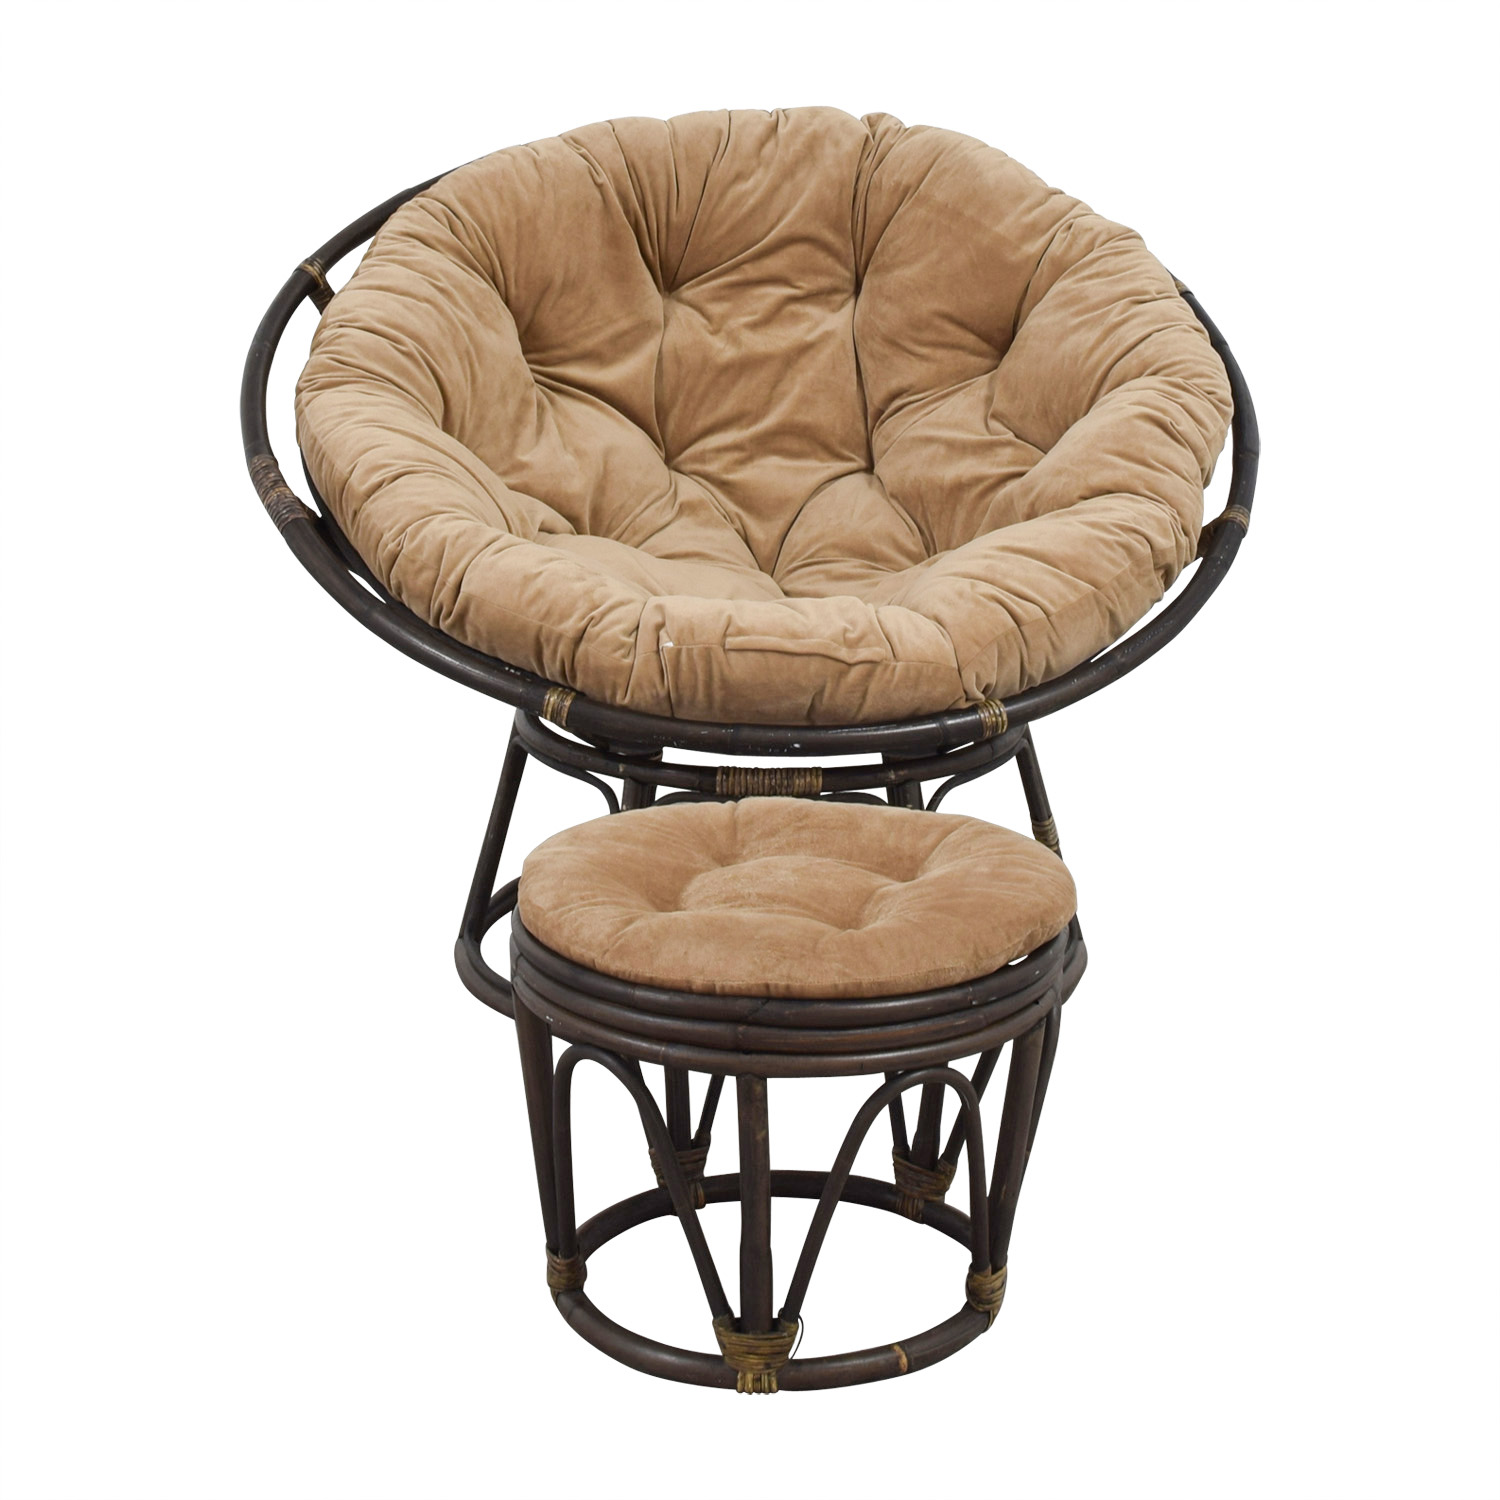 papasan chair ottoman refurbished kitchen table and chairs accent used for sale